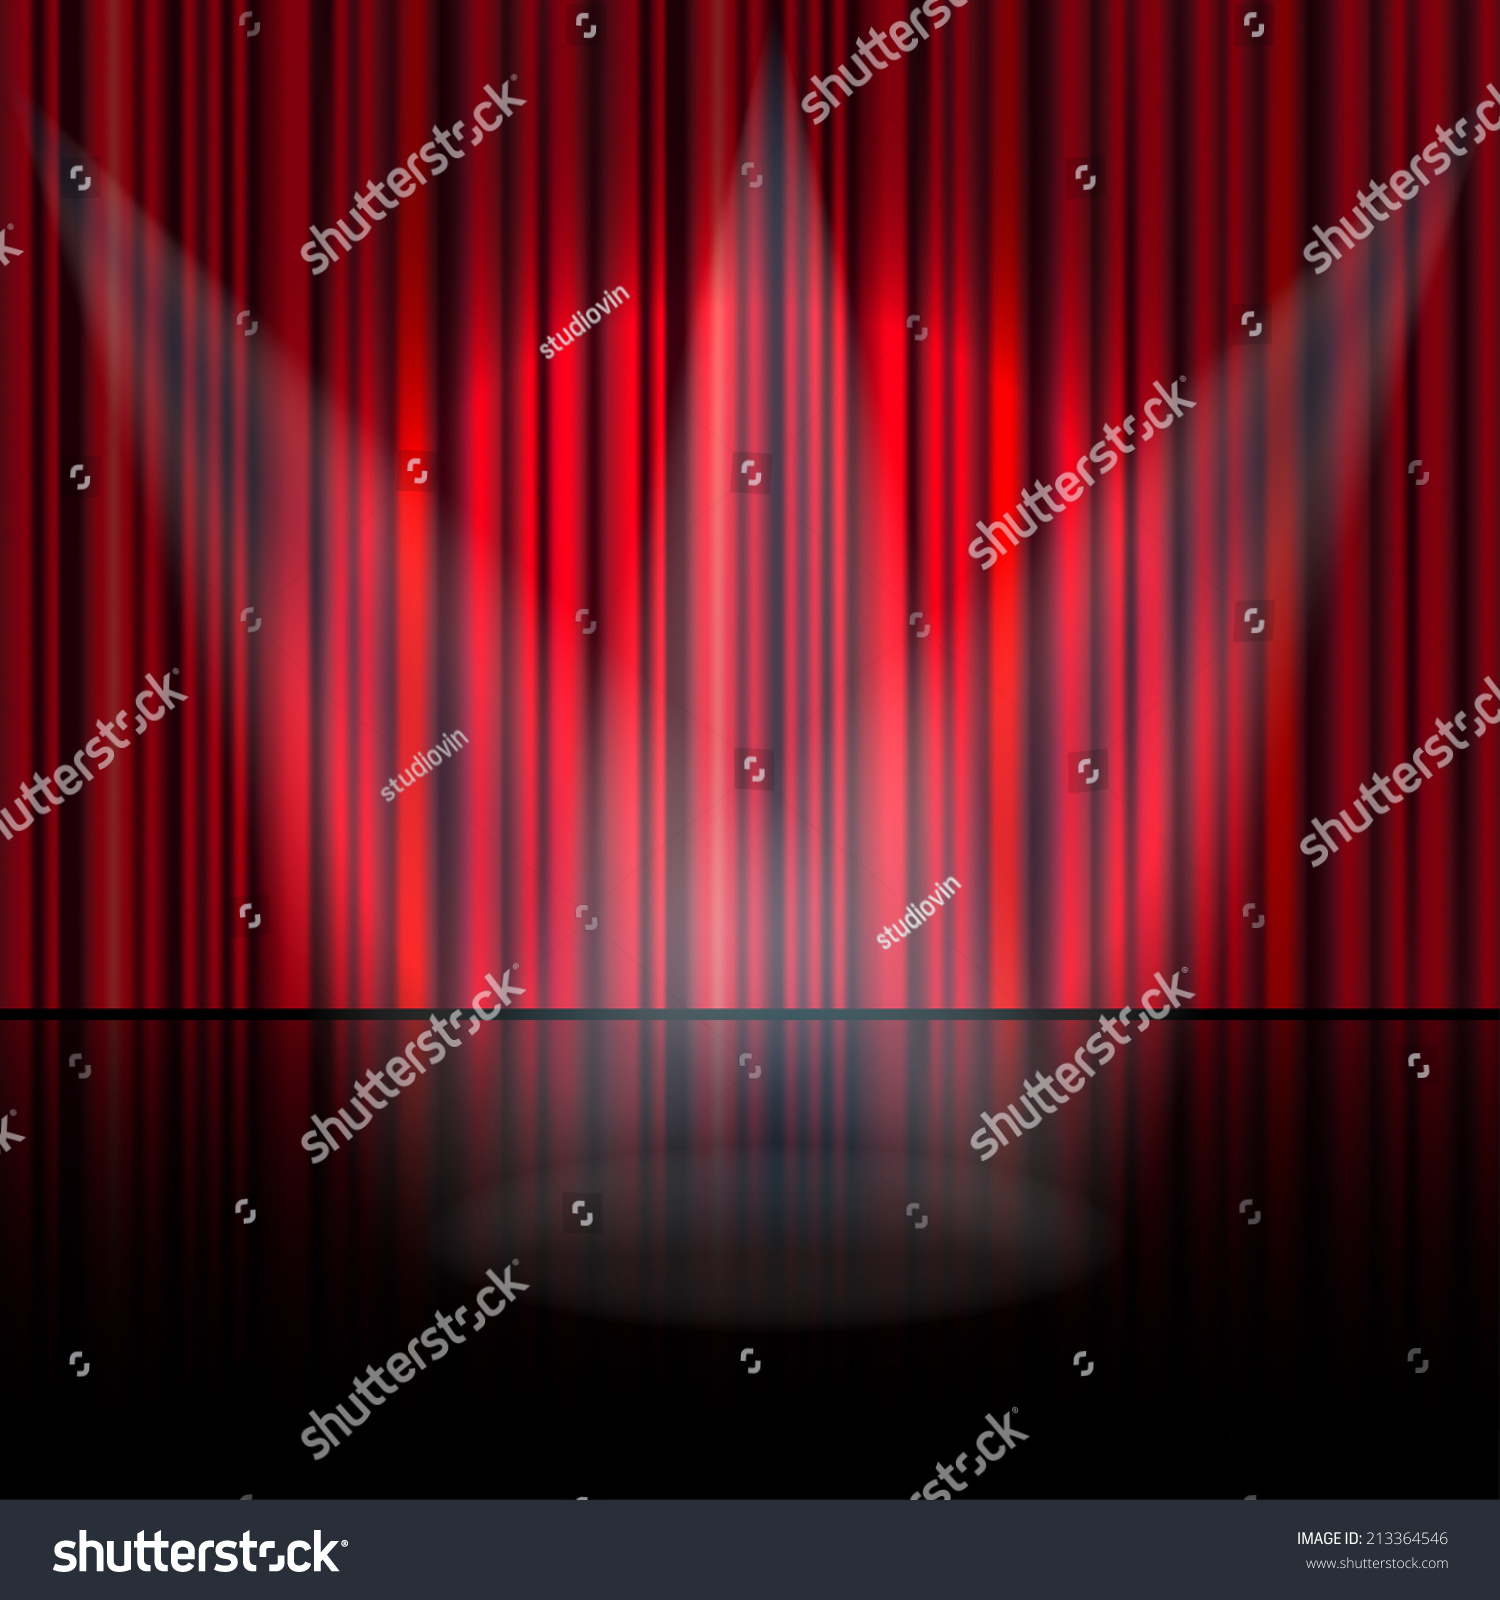 Blue stage curtains blue stage curtain vector free vector in - Spotlight On Stage Curtain Vector